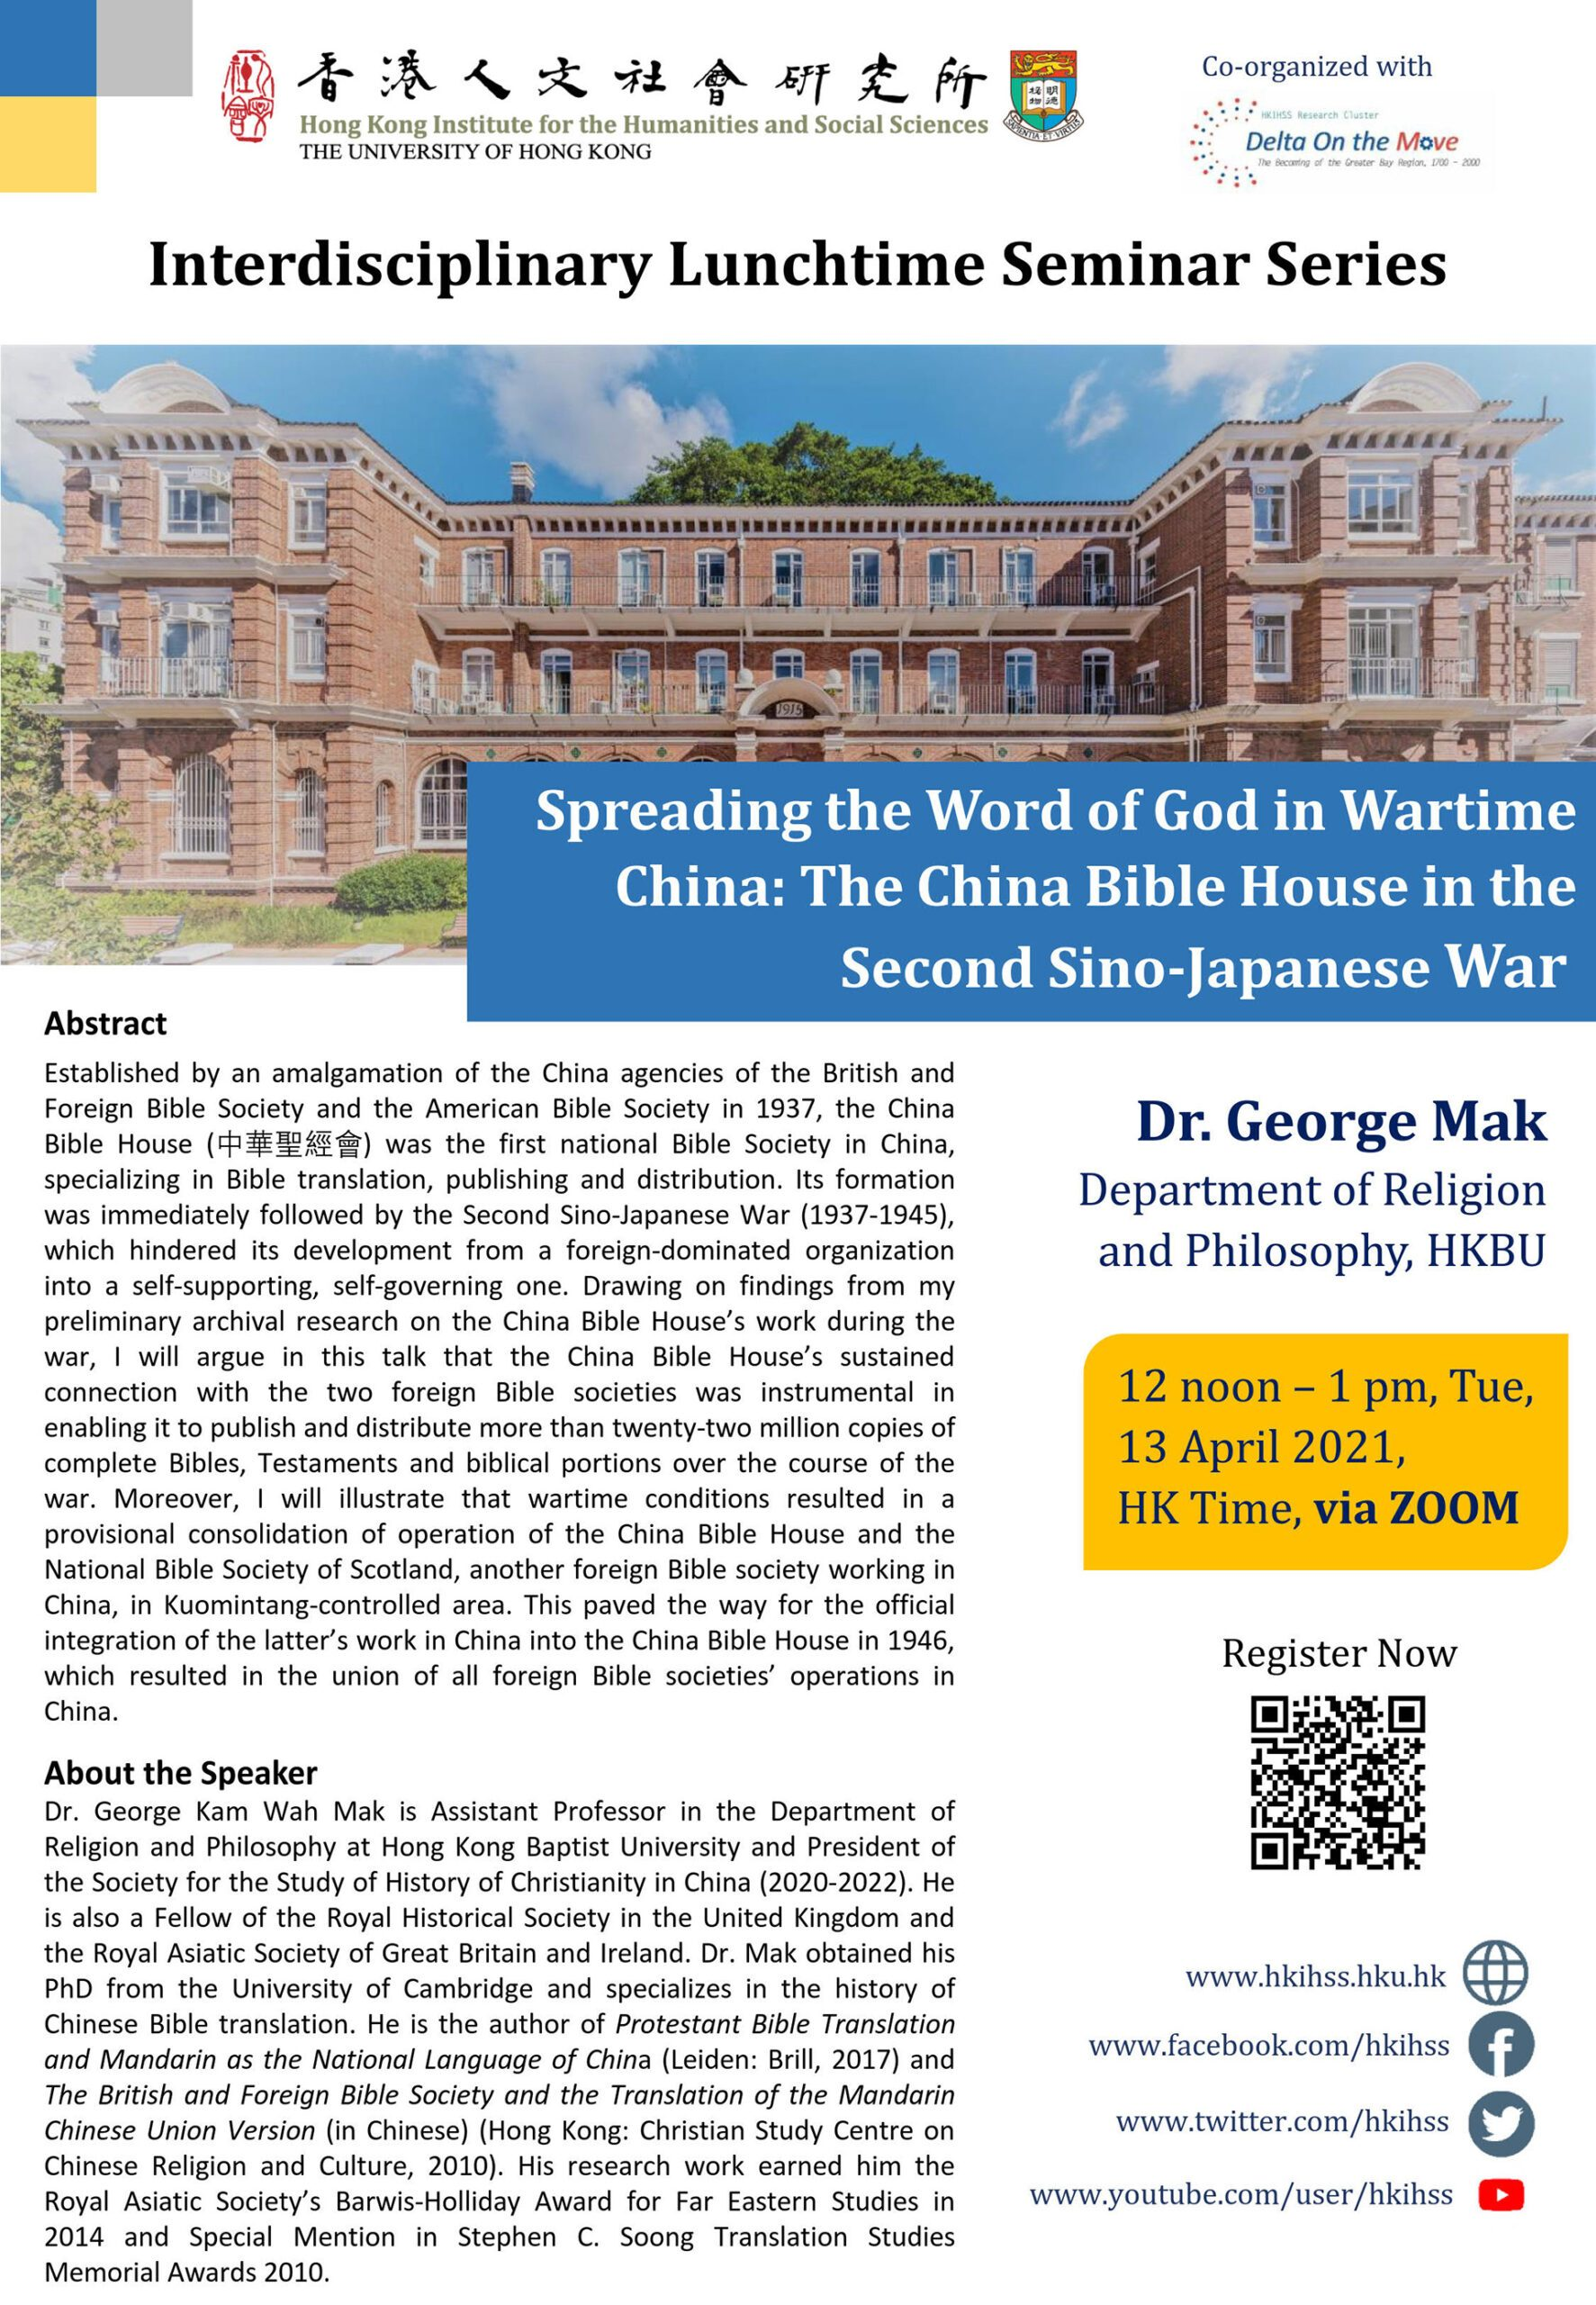 """Interdisciplinary Lunchtime Seminar on """"Spreading the Word of God in Wartime China: The China Bible House in the Second Sino-Japanese War"""" by Dr. George Mak (April 13, 2021)"""